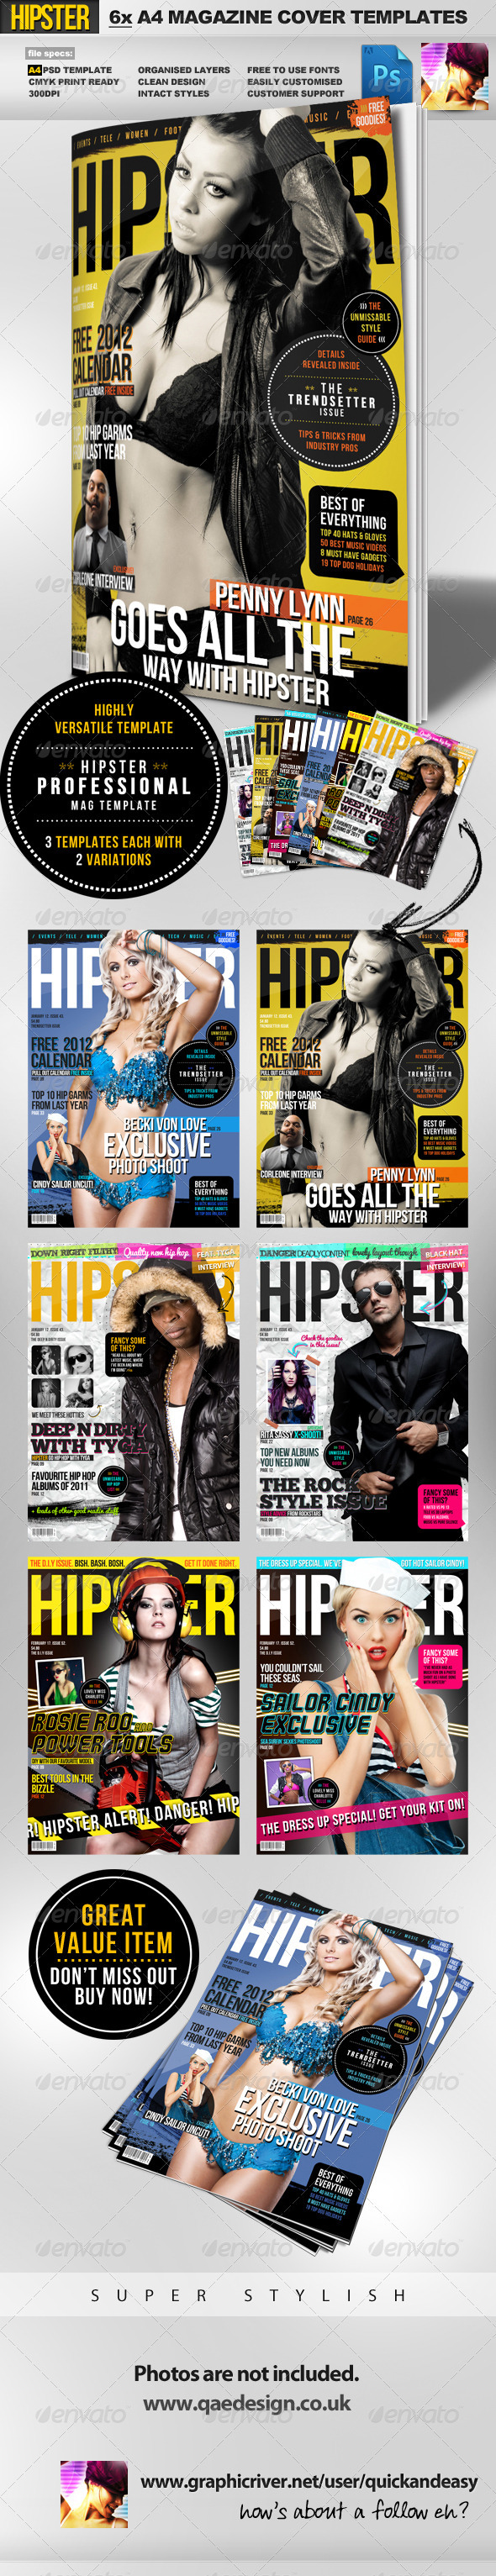 Hipster A4 Magazine Cover Templates - Magazines Print Templates